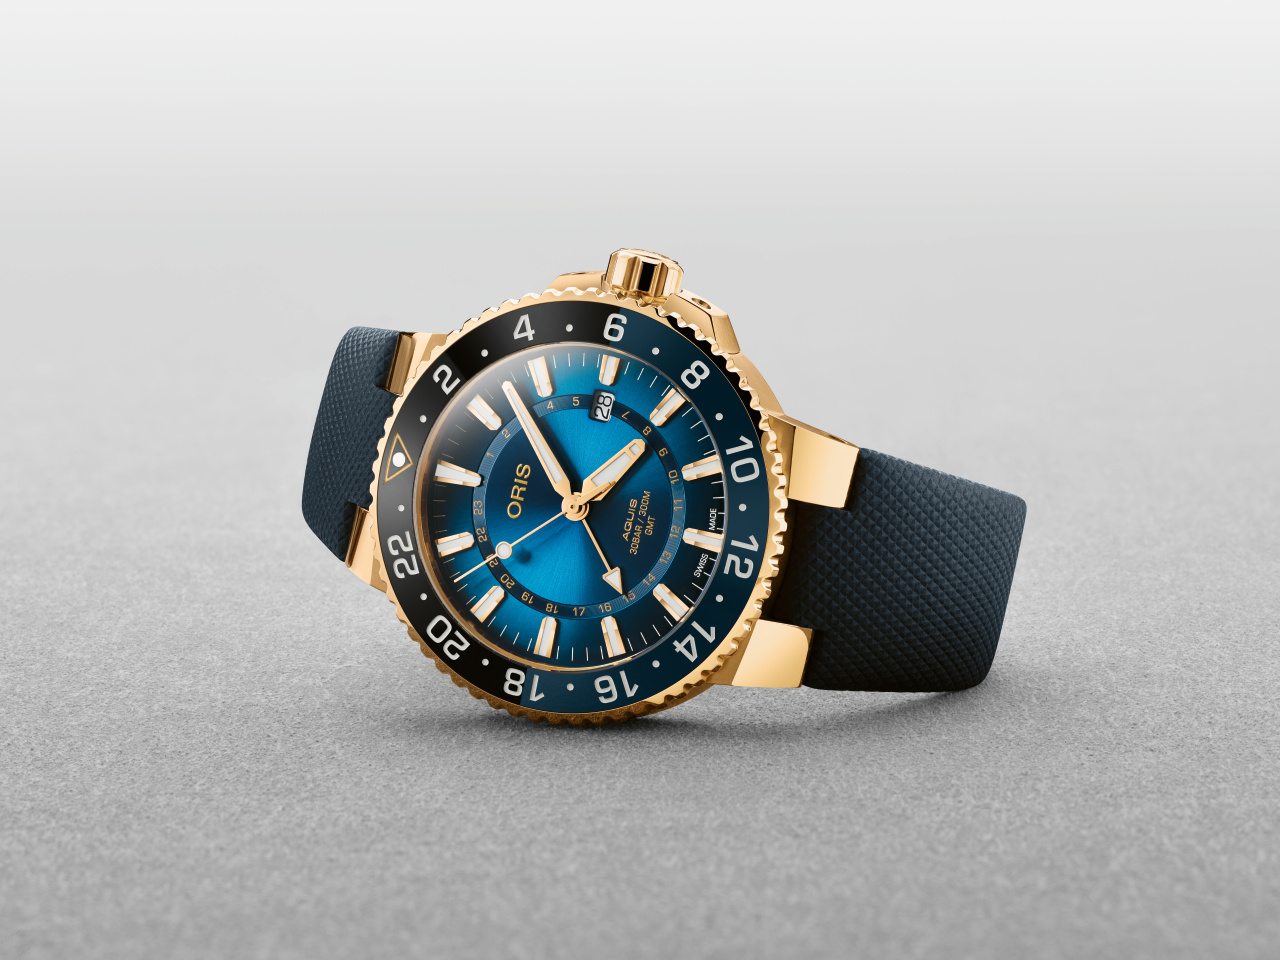 01 798 7754 6185 Set Oris Carysfort Reef Limited Edition LowRes 11968